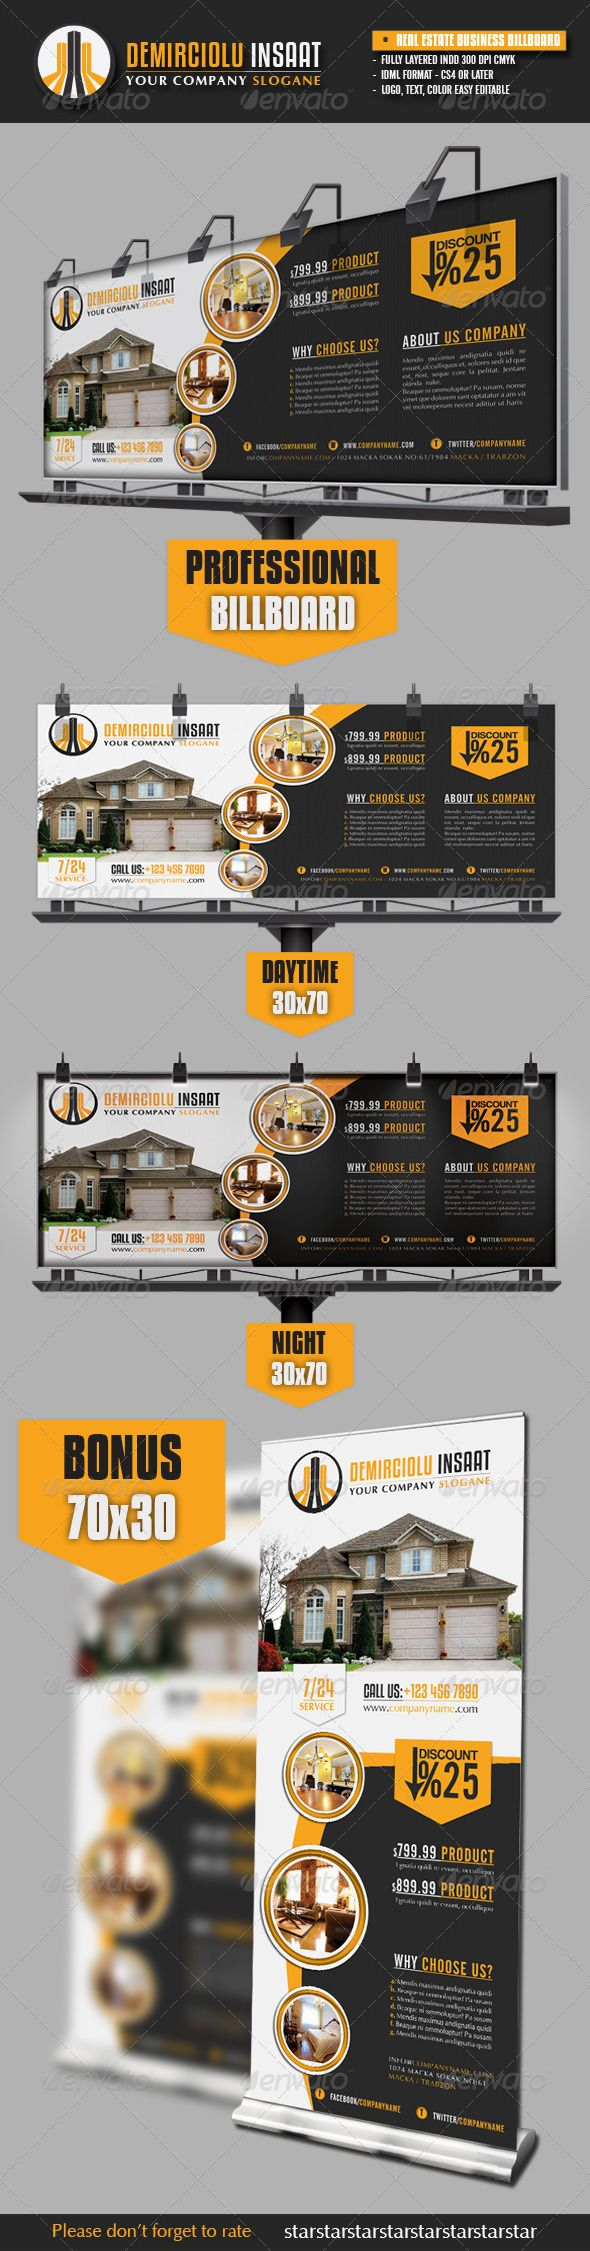 best ideas about billboard design advertising real estate business billboard